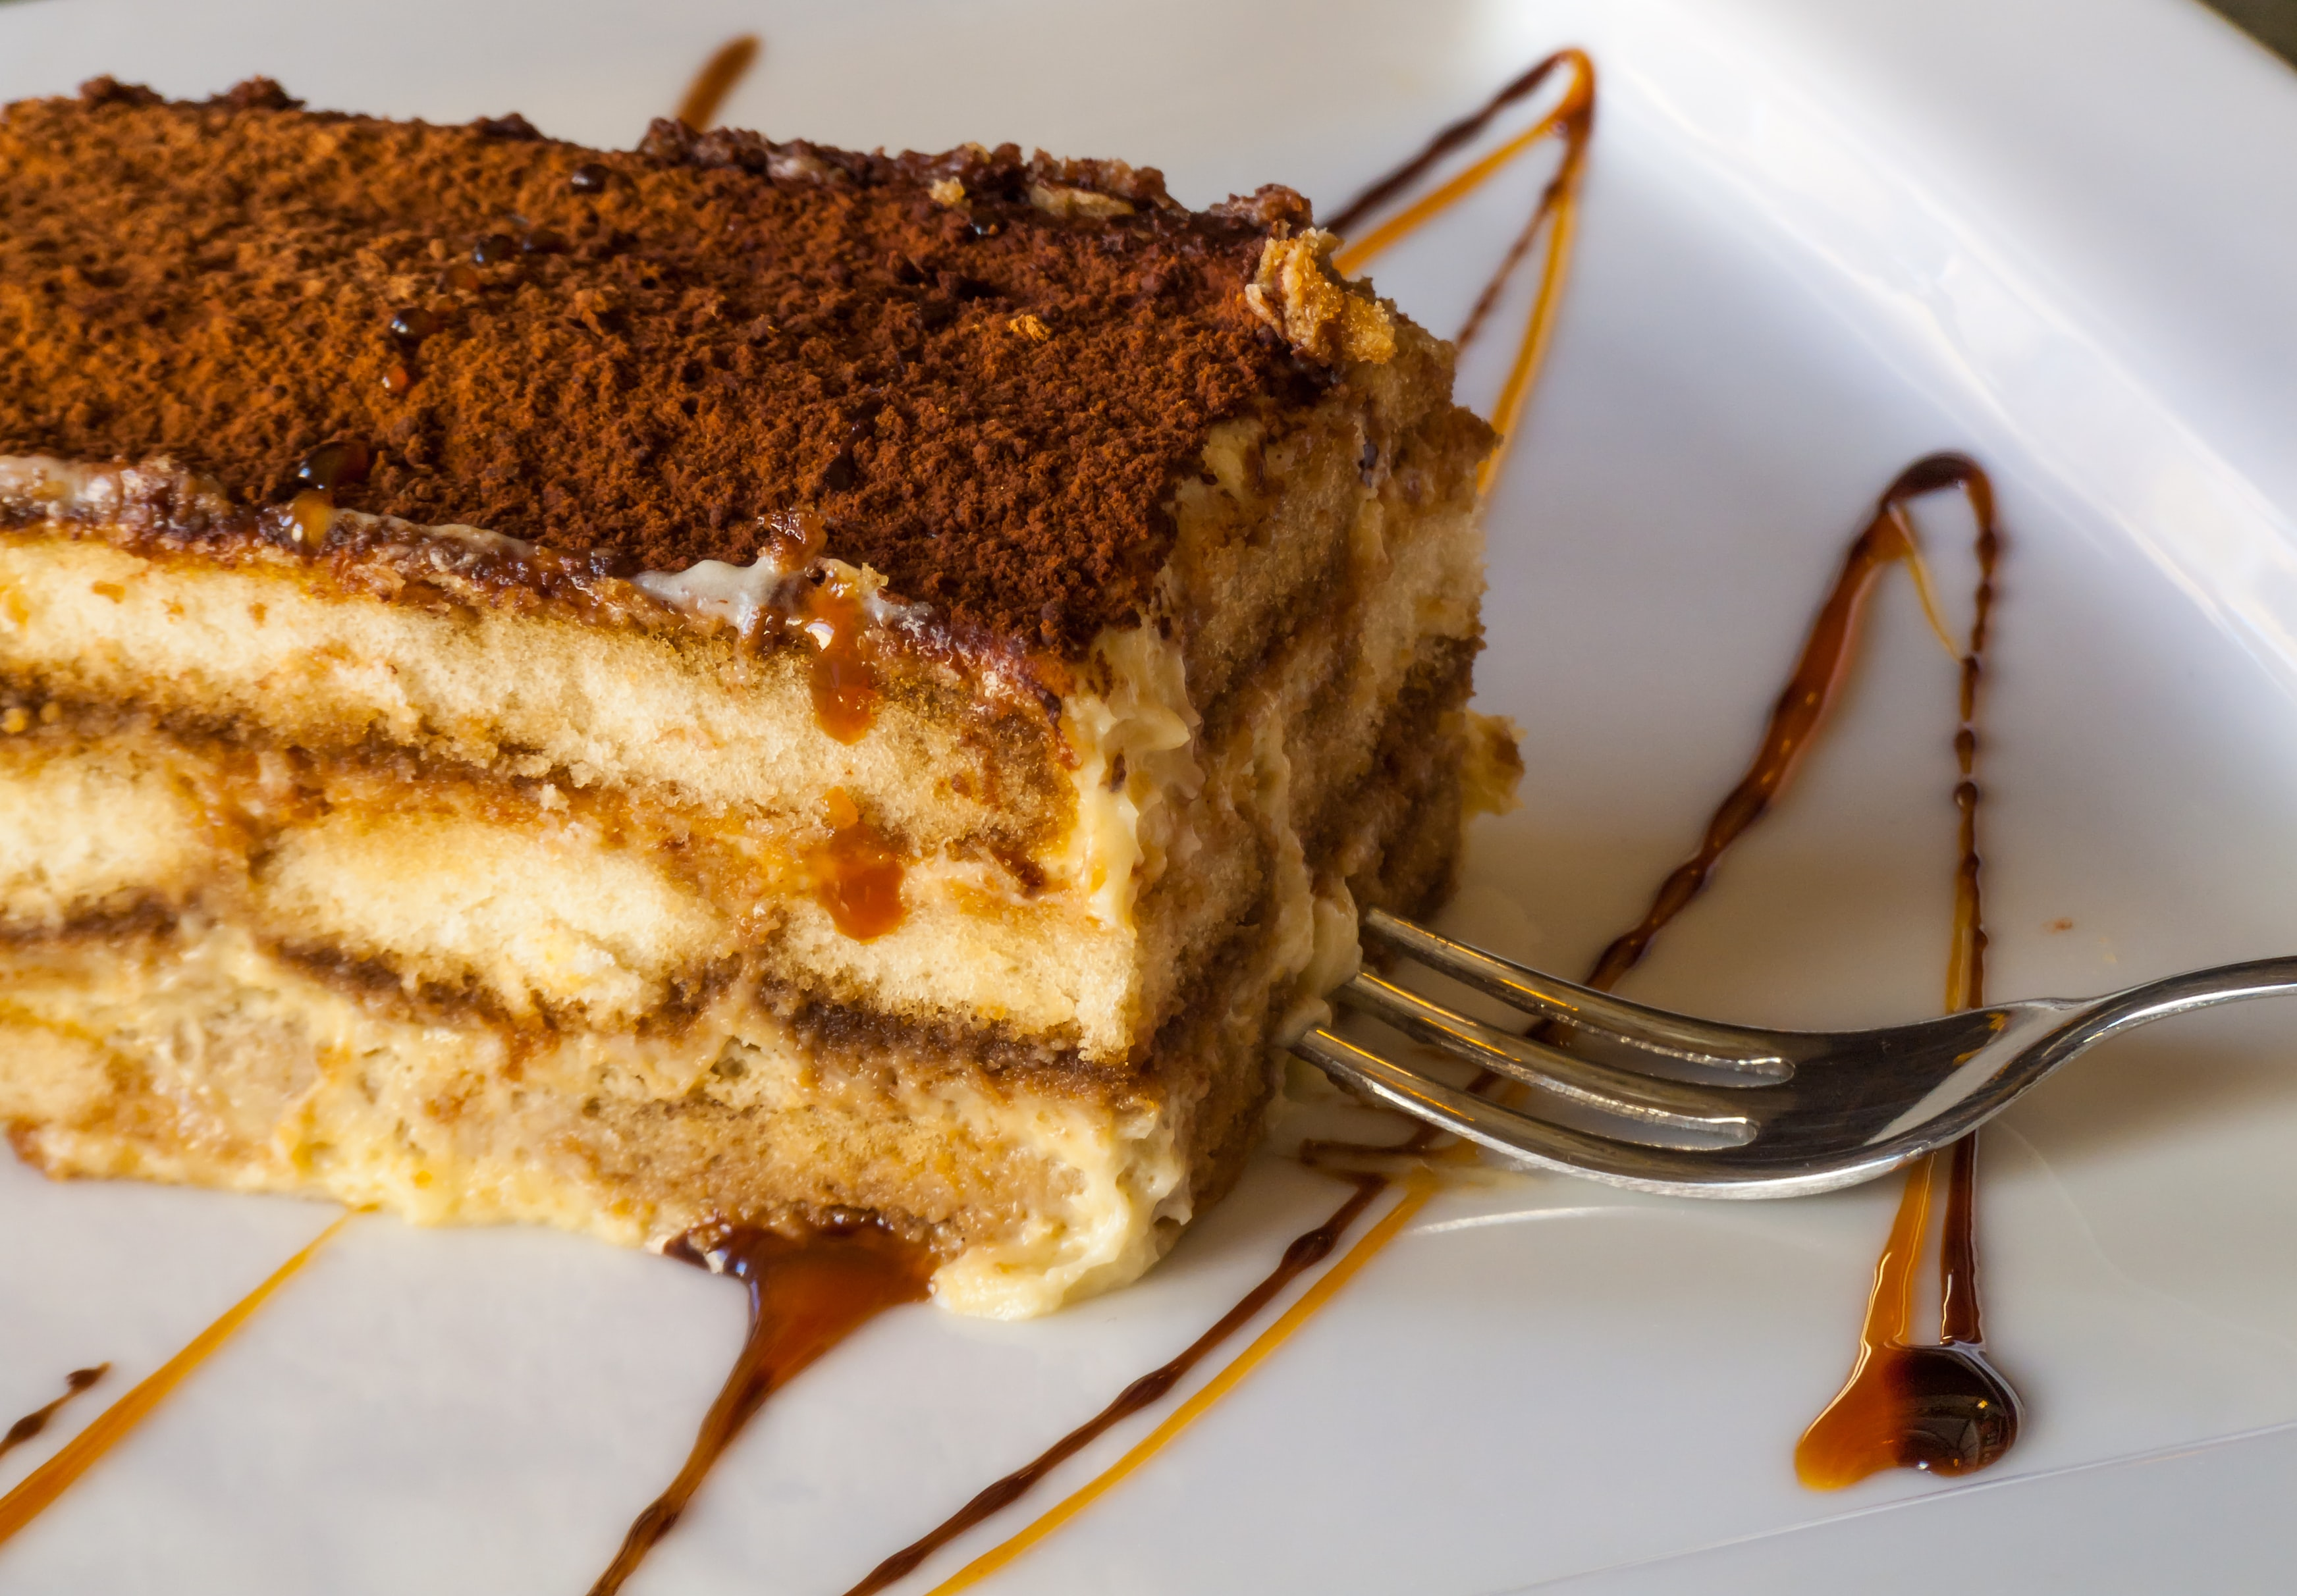 A slice of tiramisu drizzled with caramel besides a steel fork